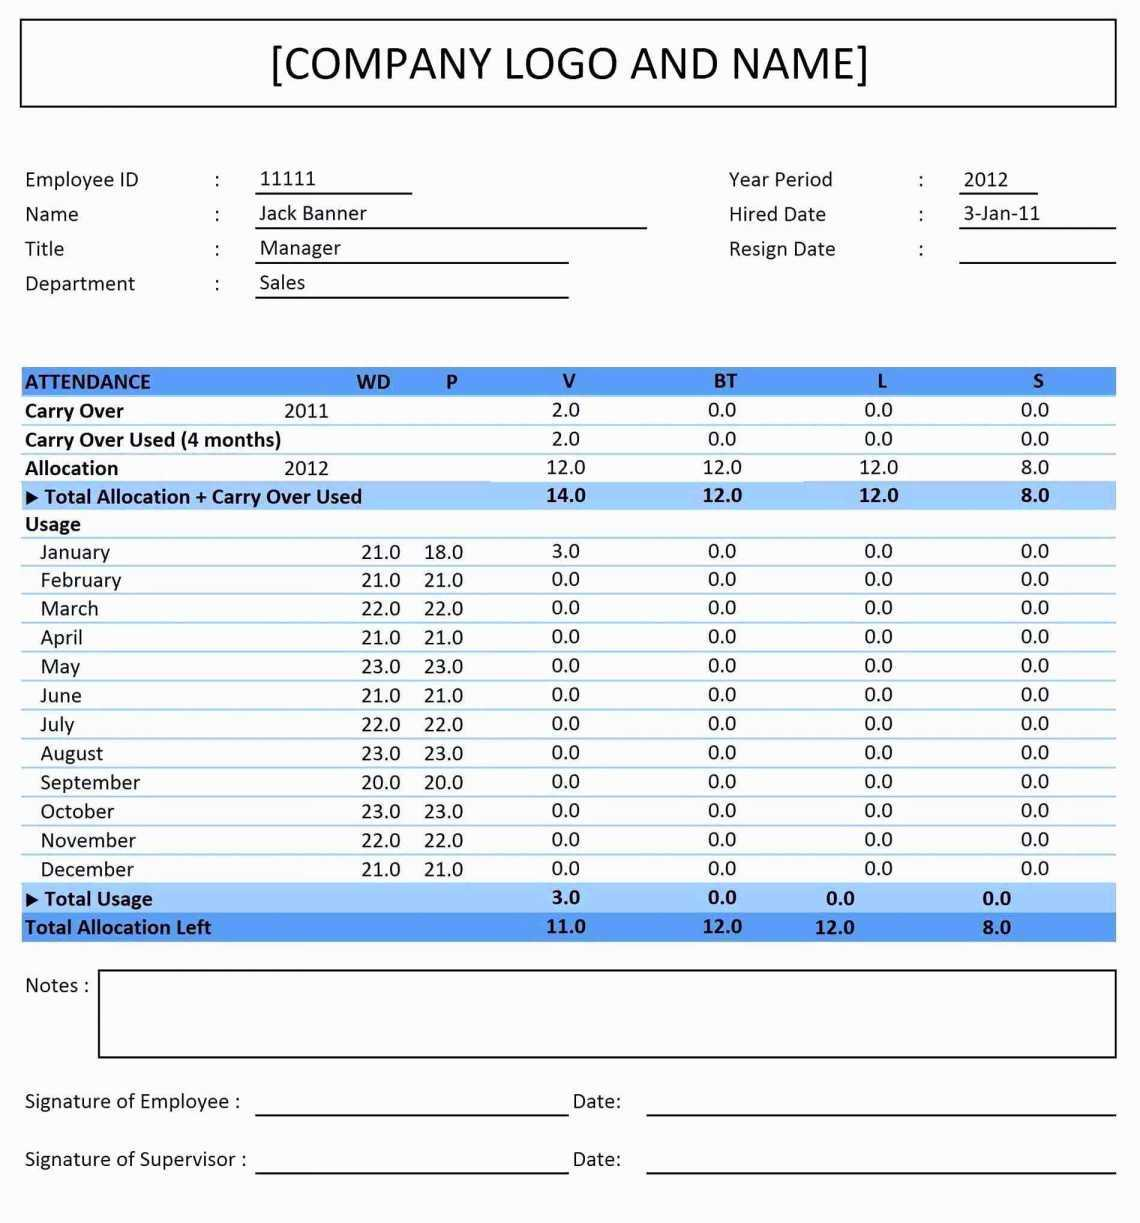 Sales Forecast Spreadsheet Template 12 Month Free Example intended for Stock Report Template Excel